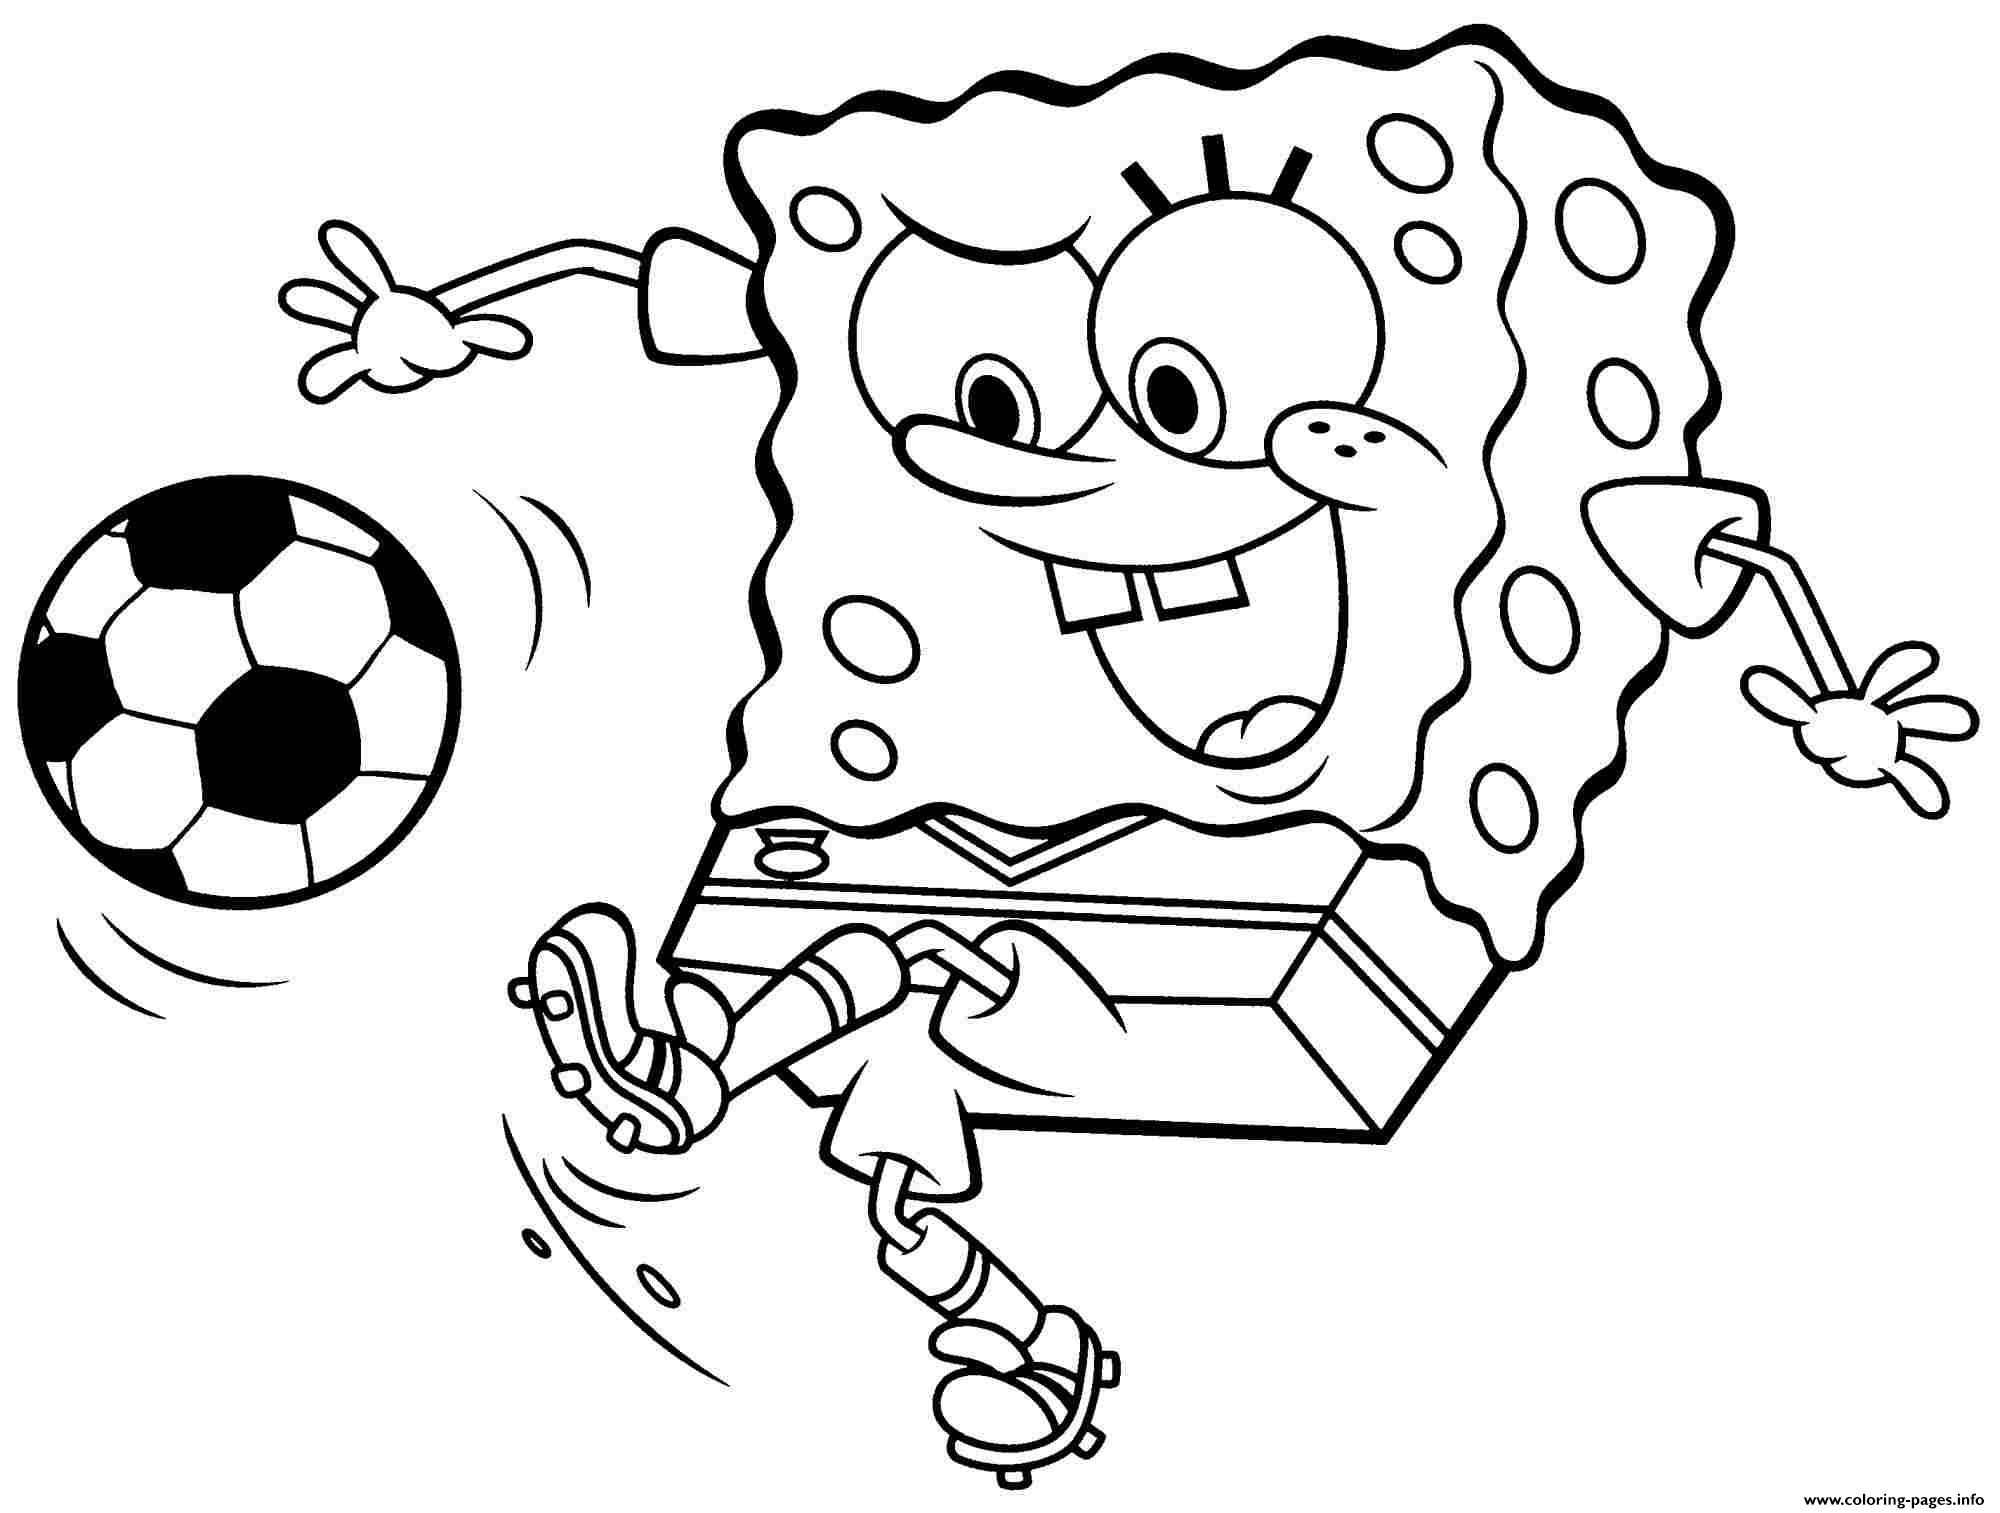 Spongebob Play Soccer Coloring Pages Printable